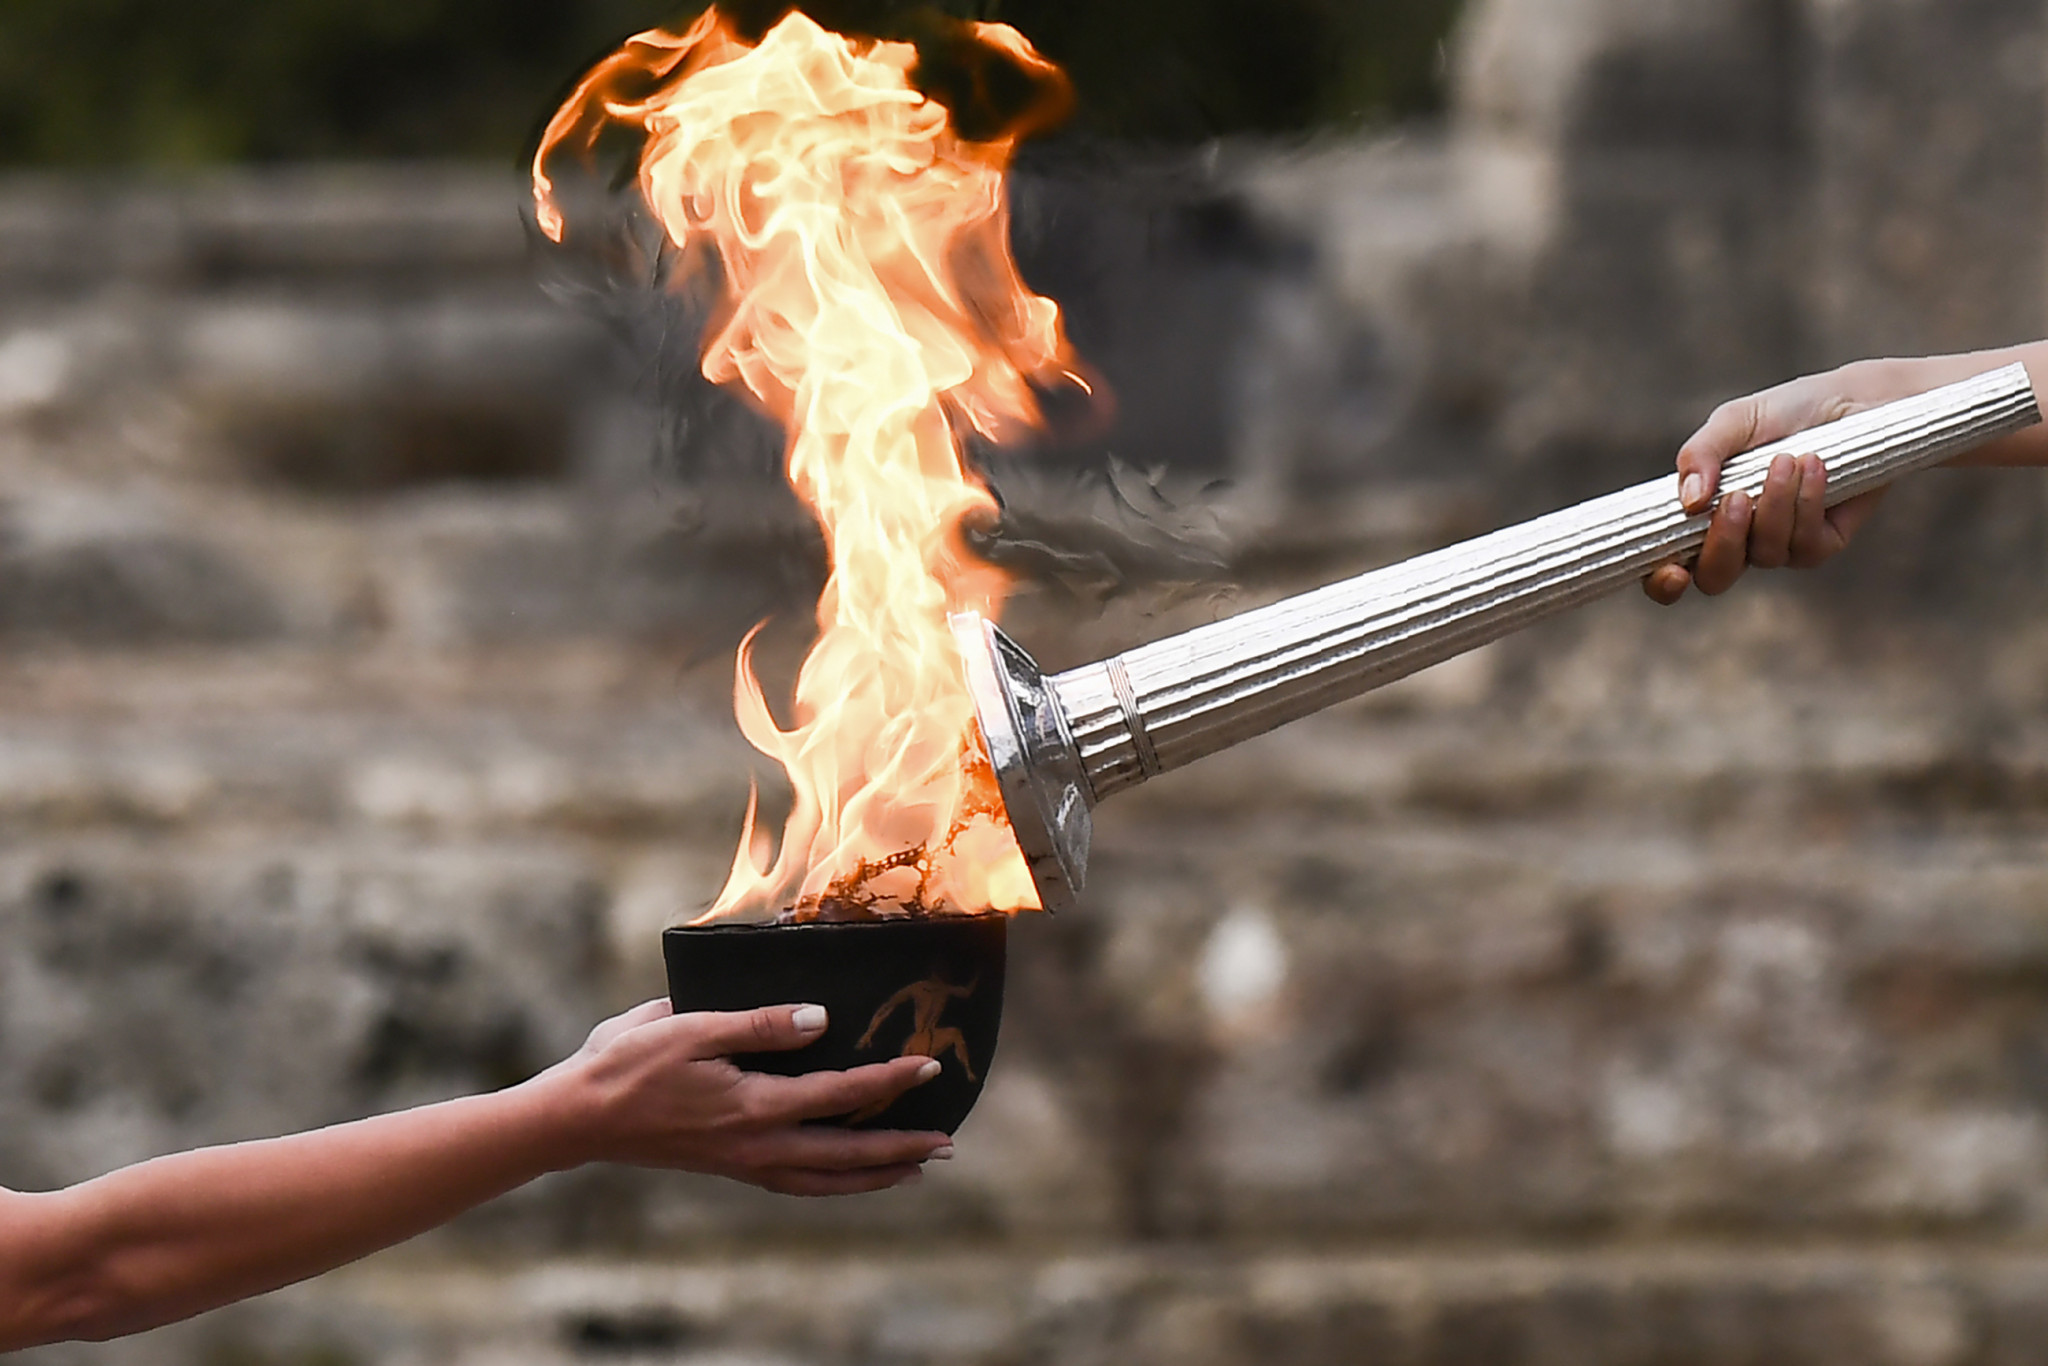 Pyeongchang 2018 Torch lighting takes place with reserve flame